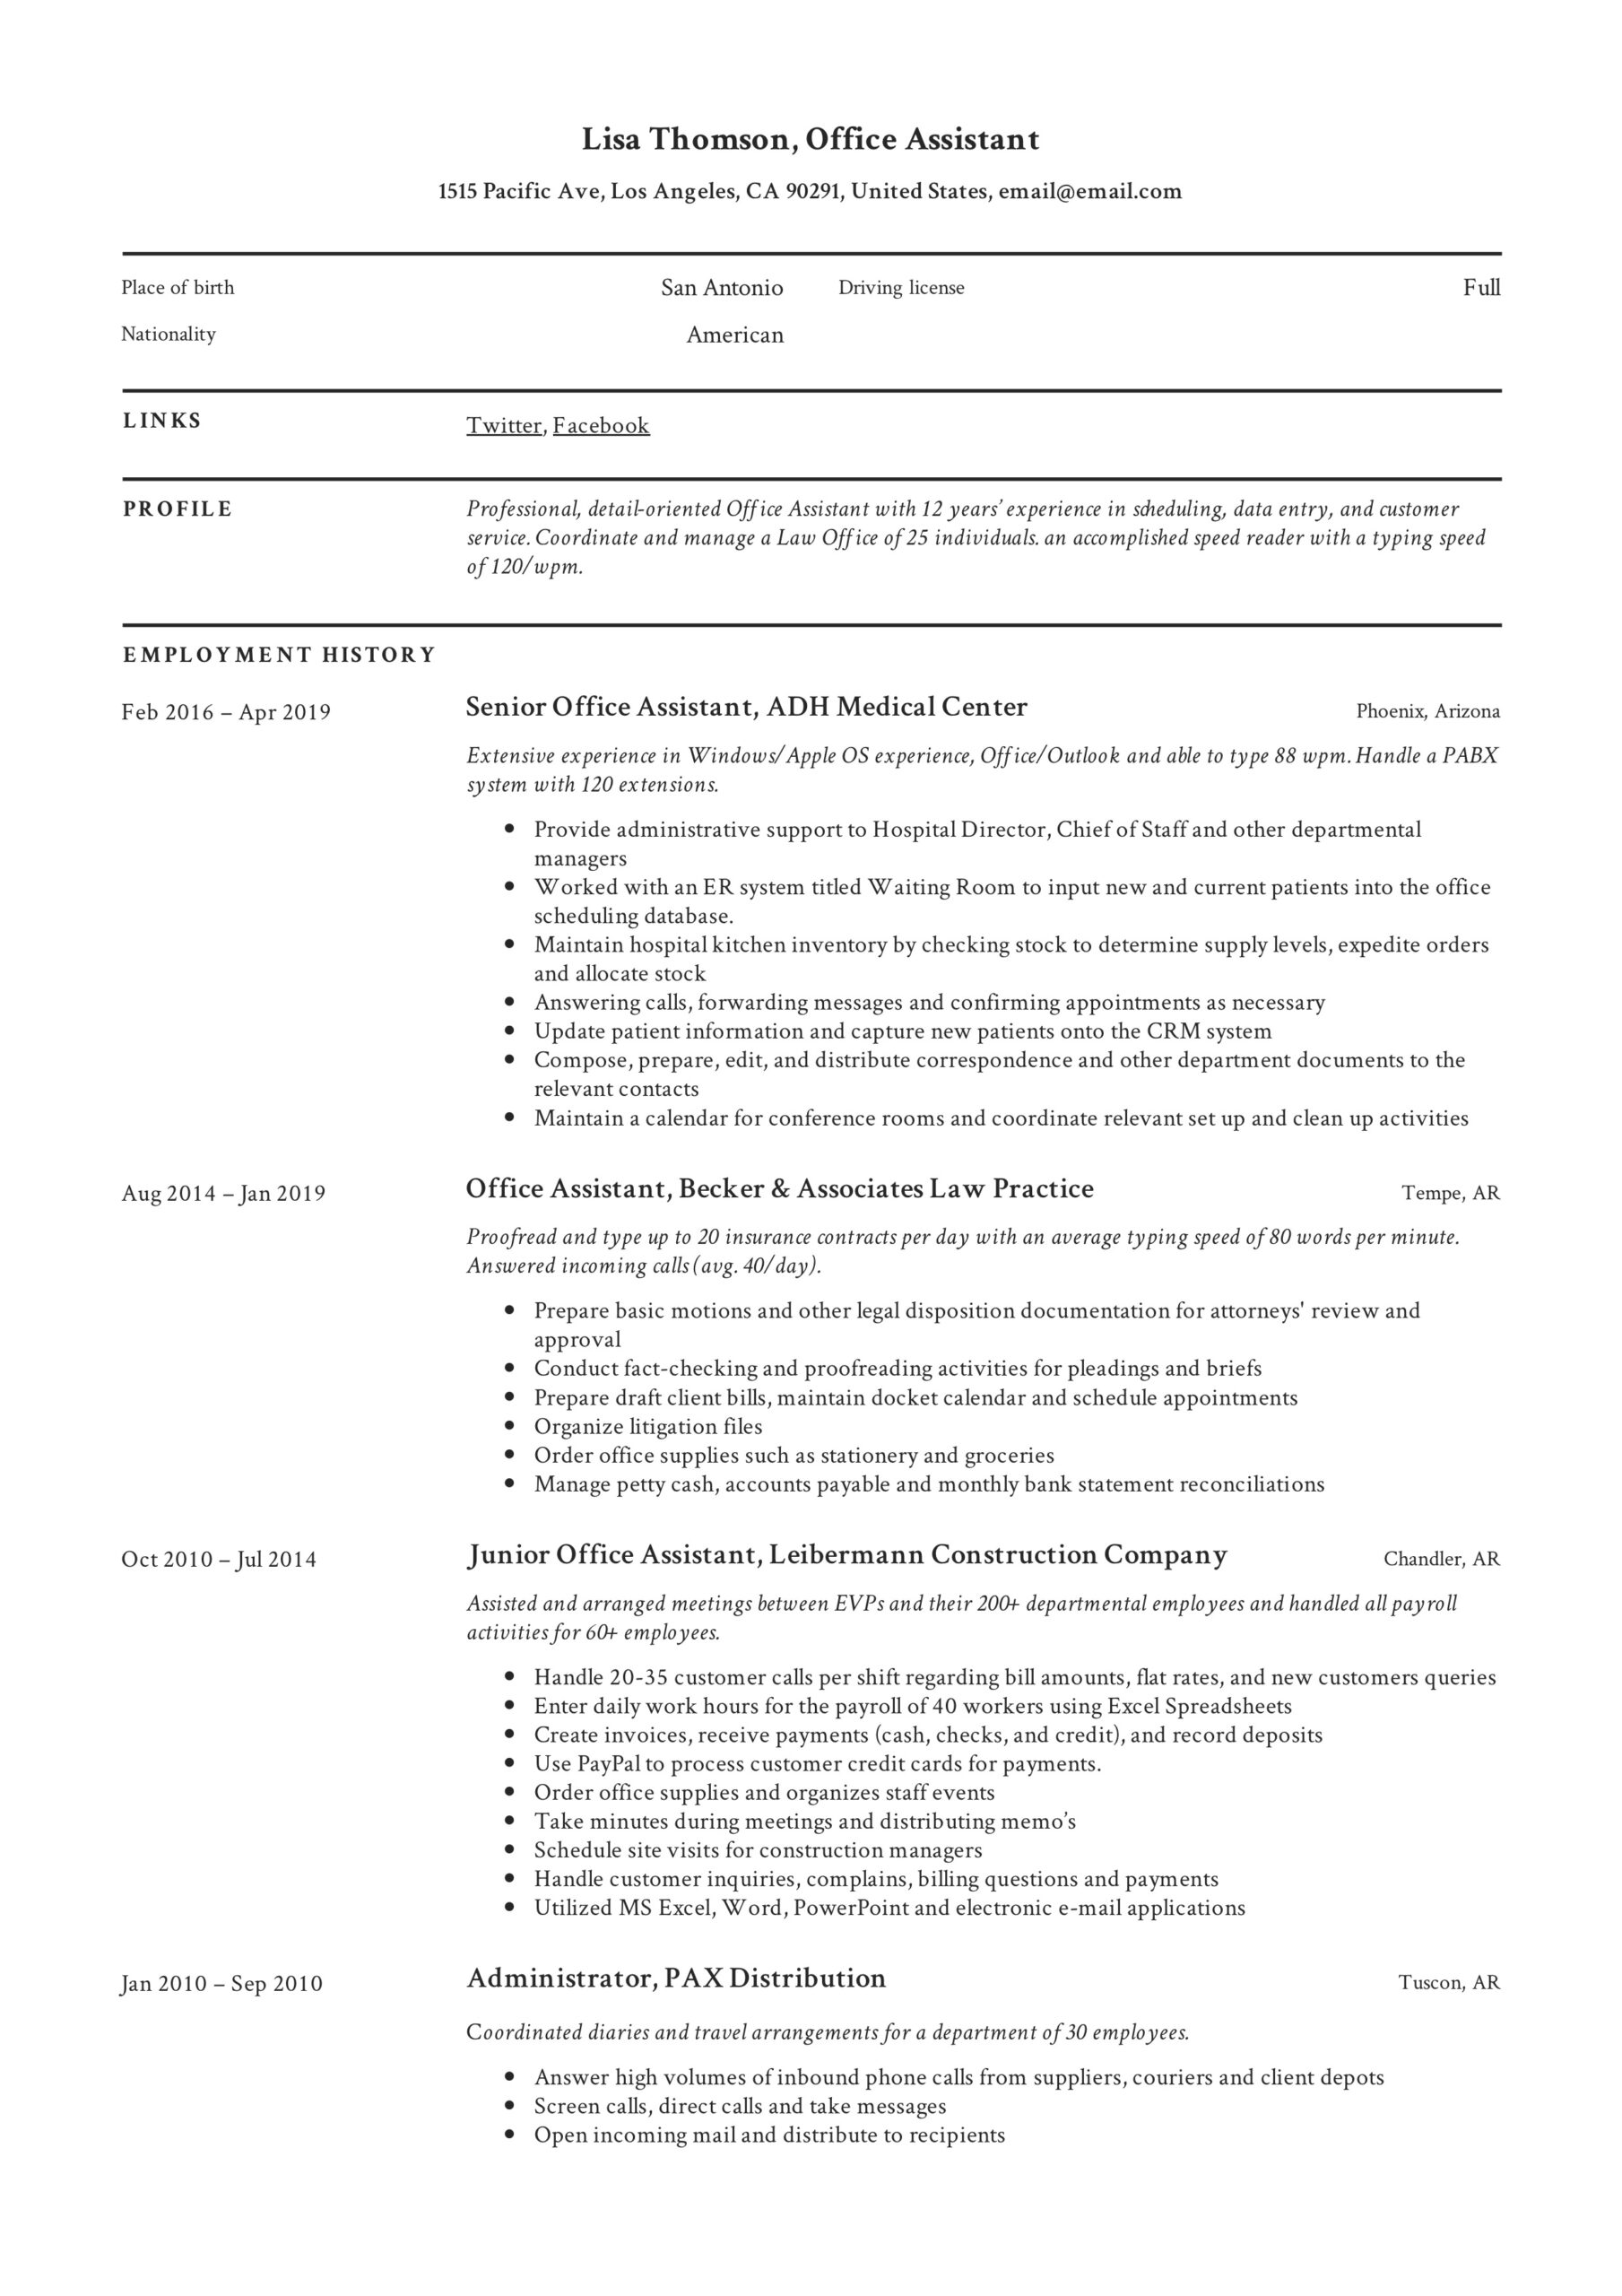 office assistant resume writing guide templates medical example lisa thomson length Resume Medical Office Assistant Resume Example